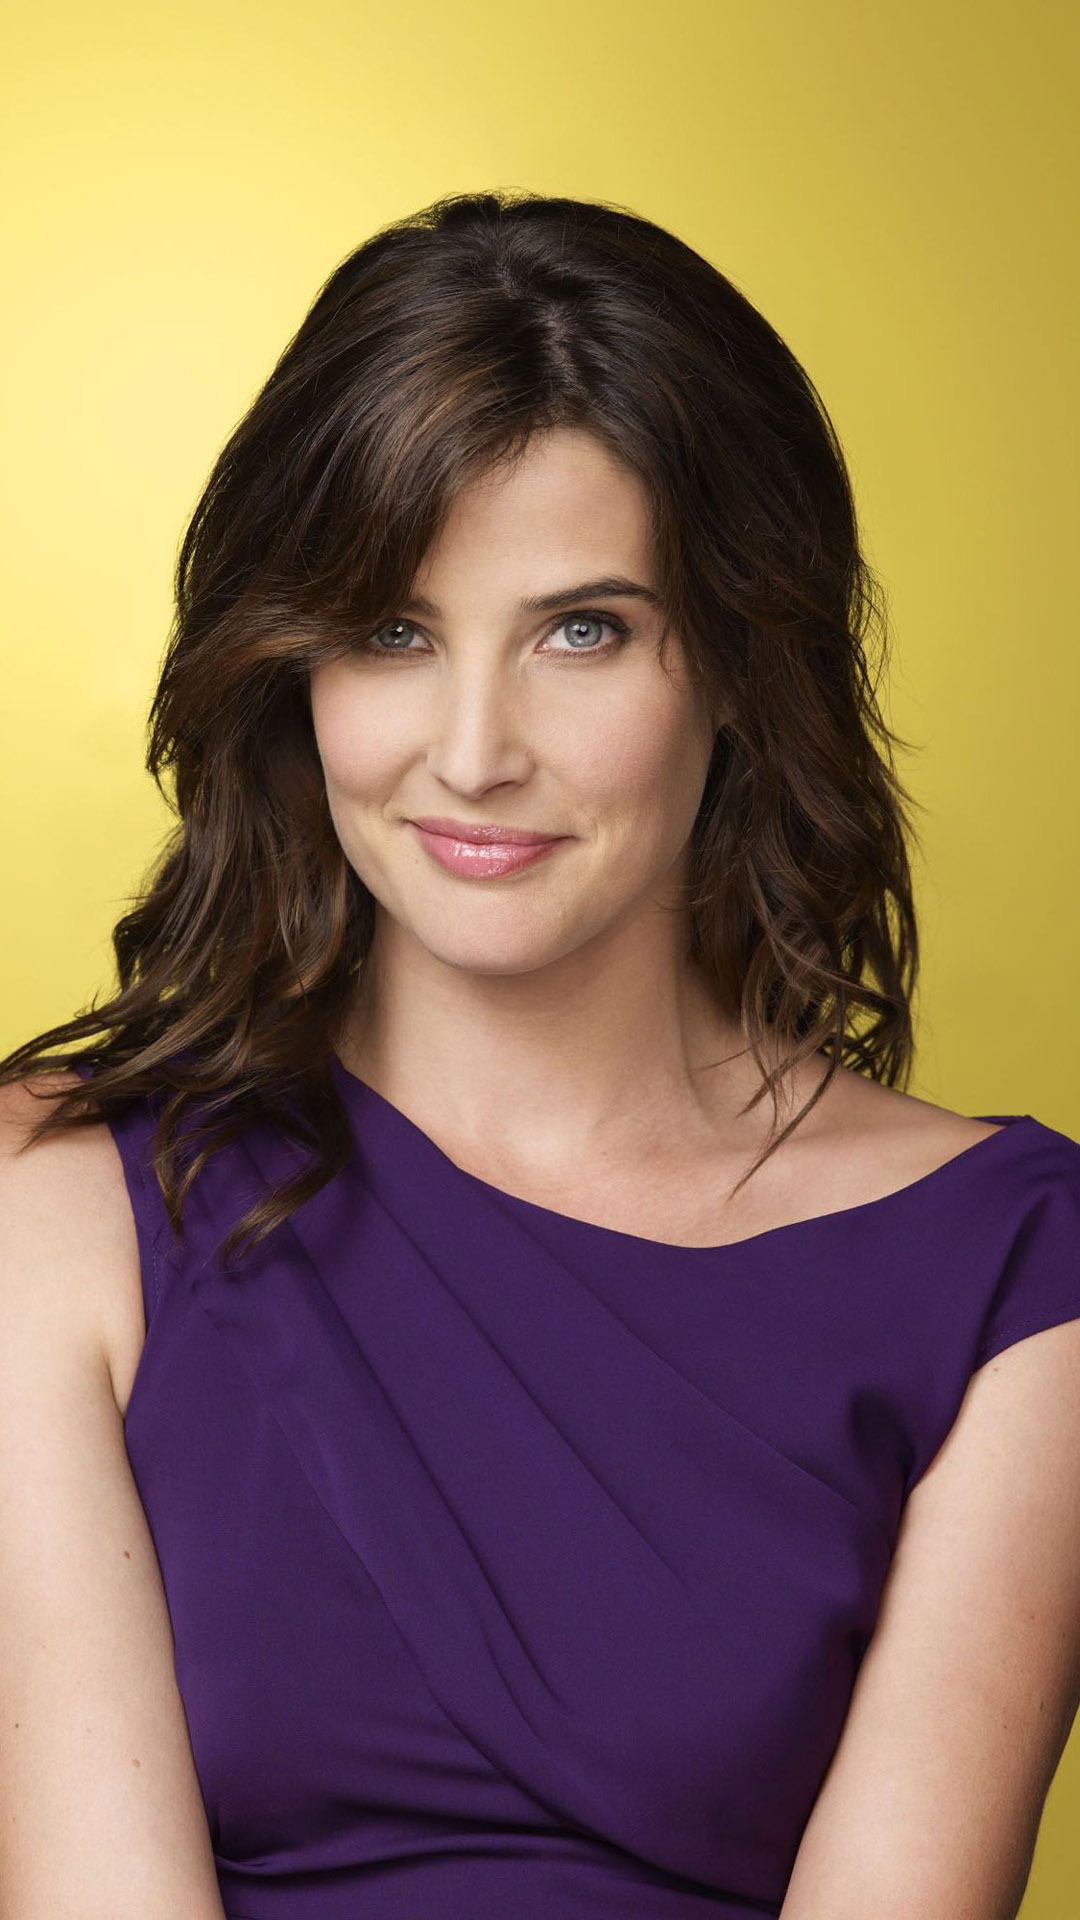 Celebrity Cobie Smulders Wallpaper Hd For Mobile Samsung Galaxy S4